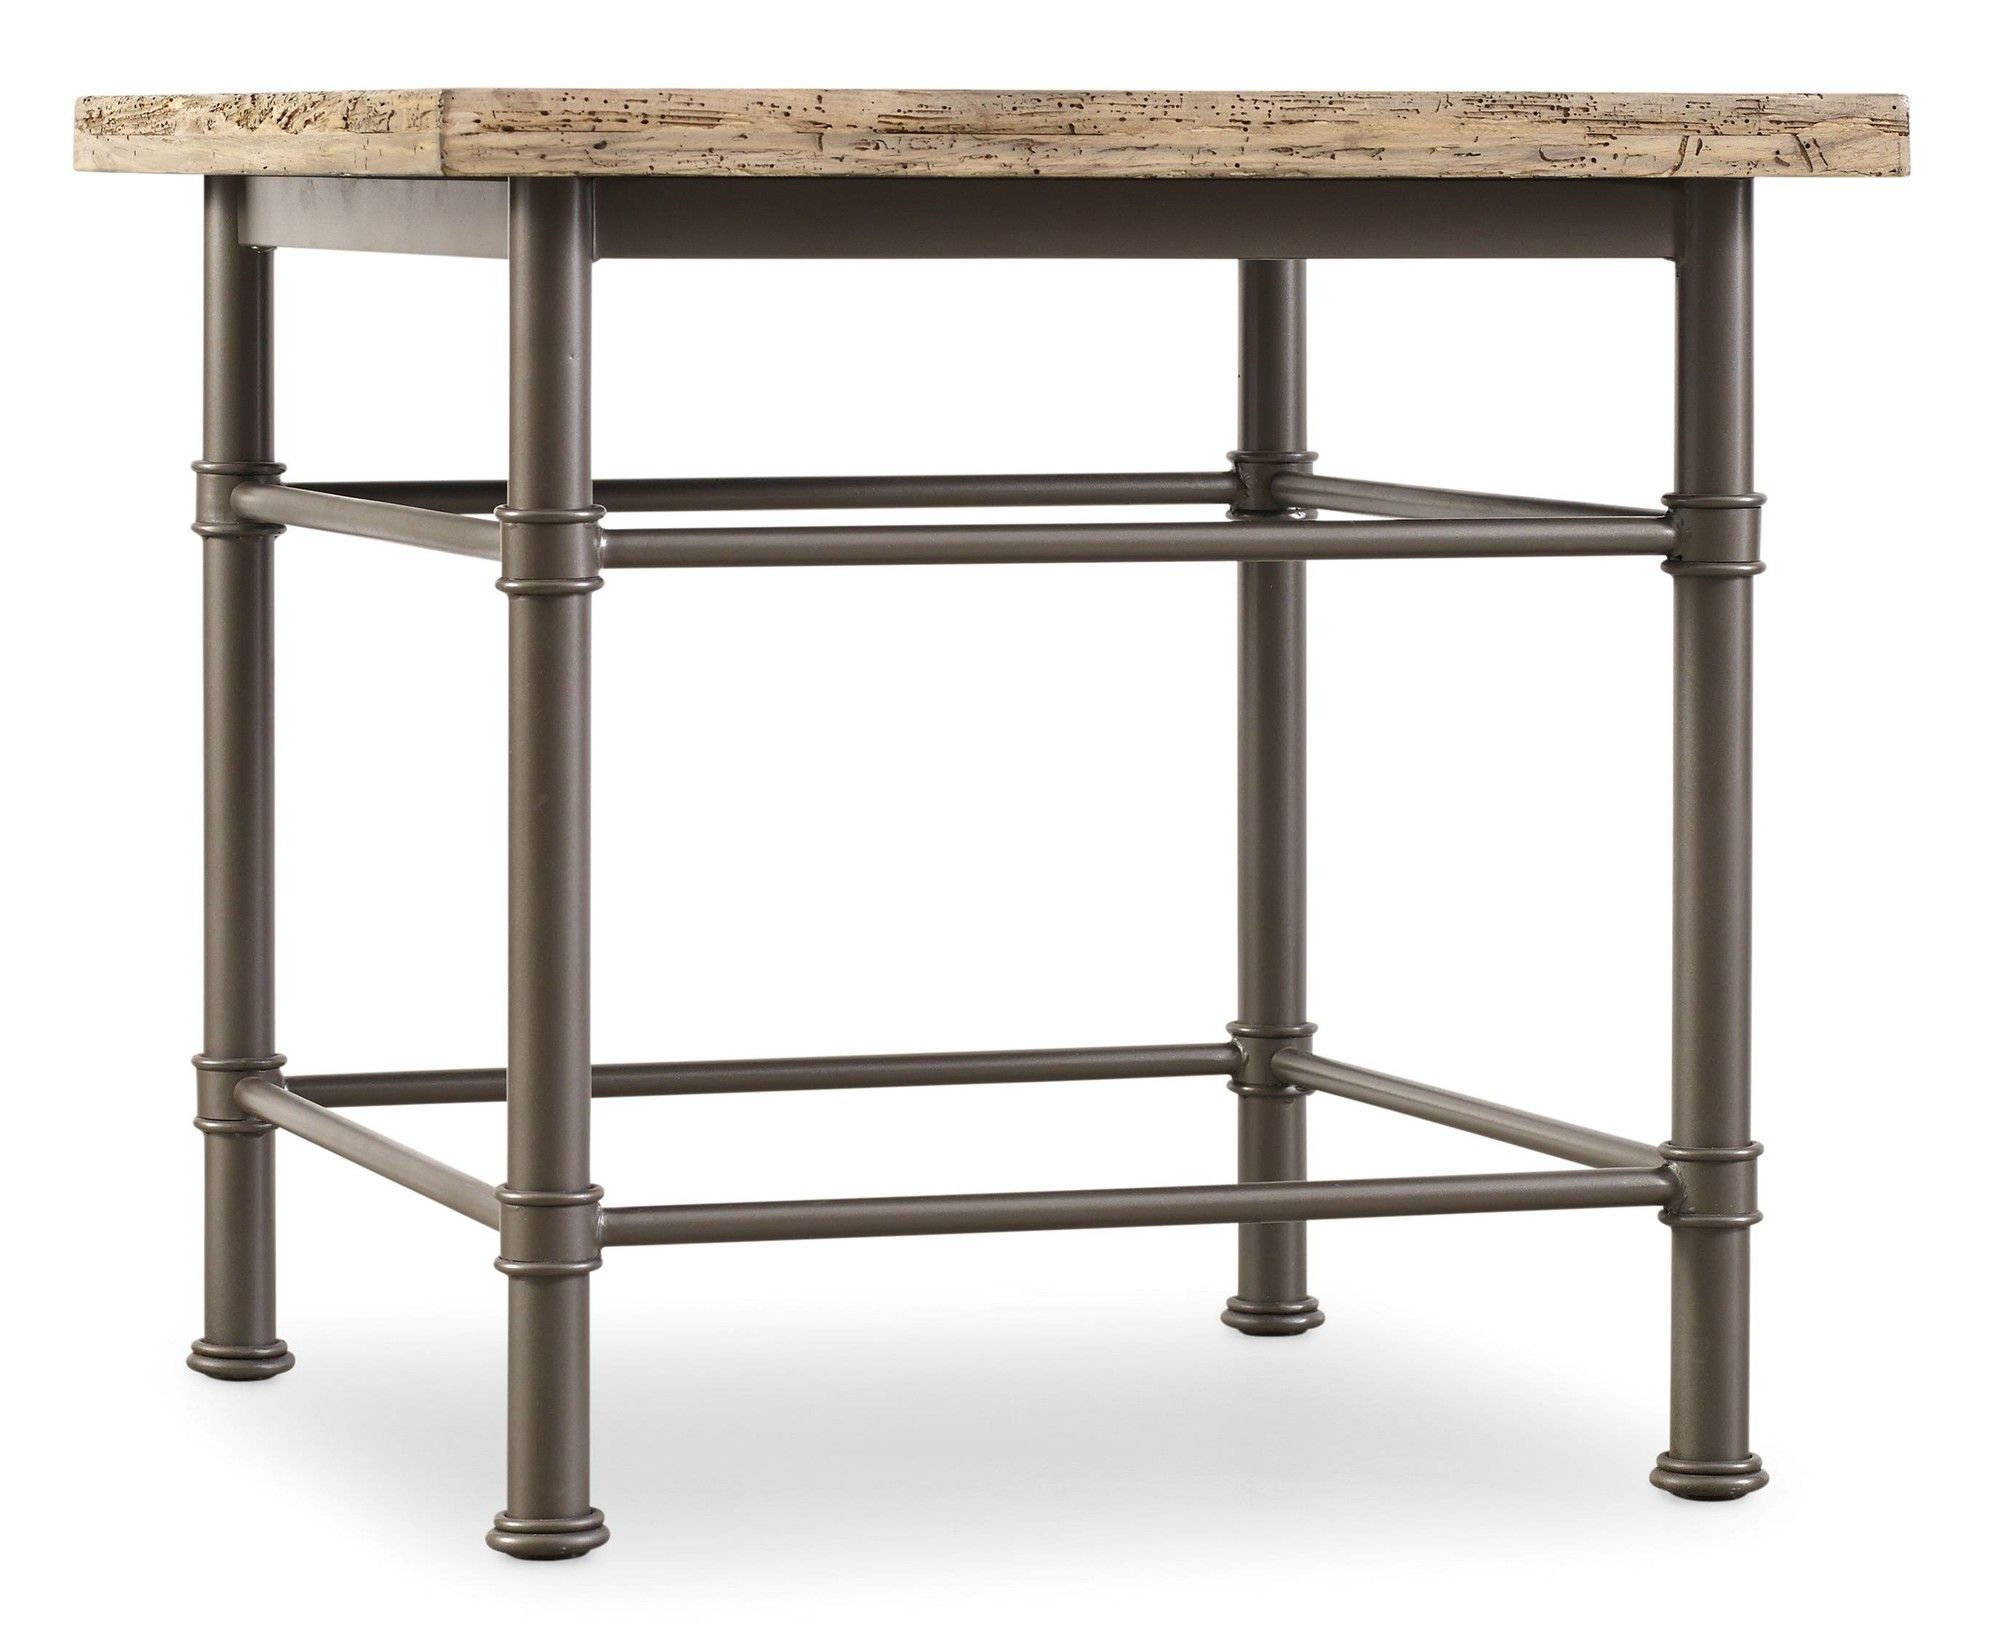 Paul schatz furniture portland or  Arcata End Table  Products  Pinterest  Products